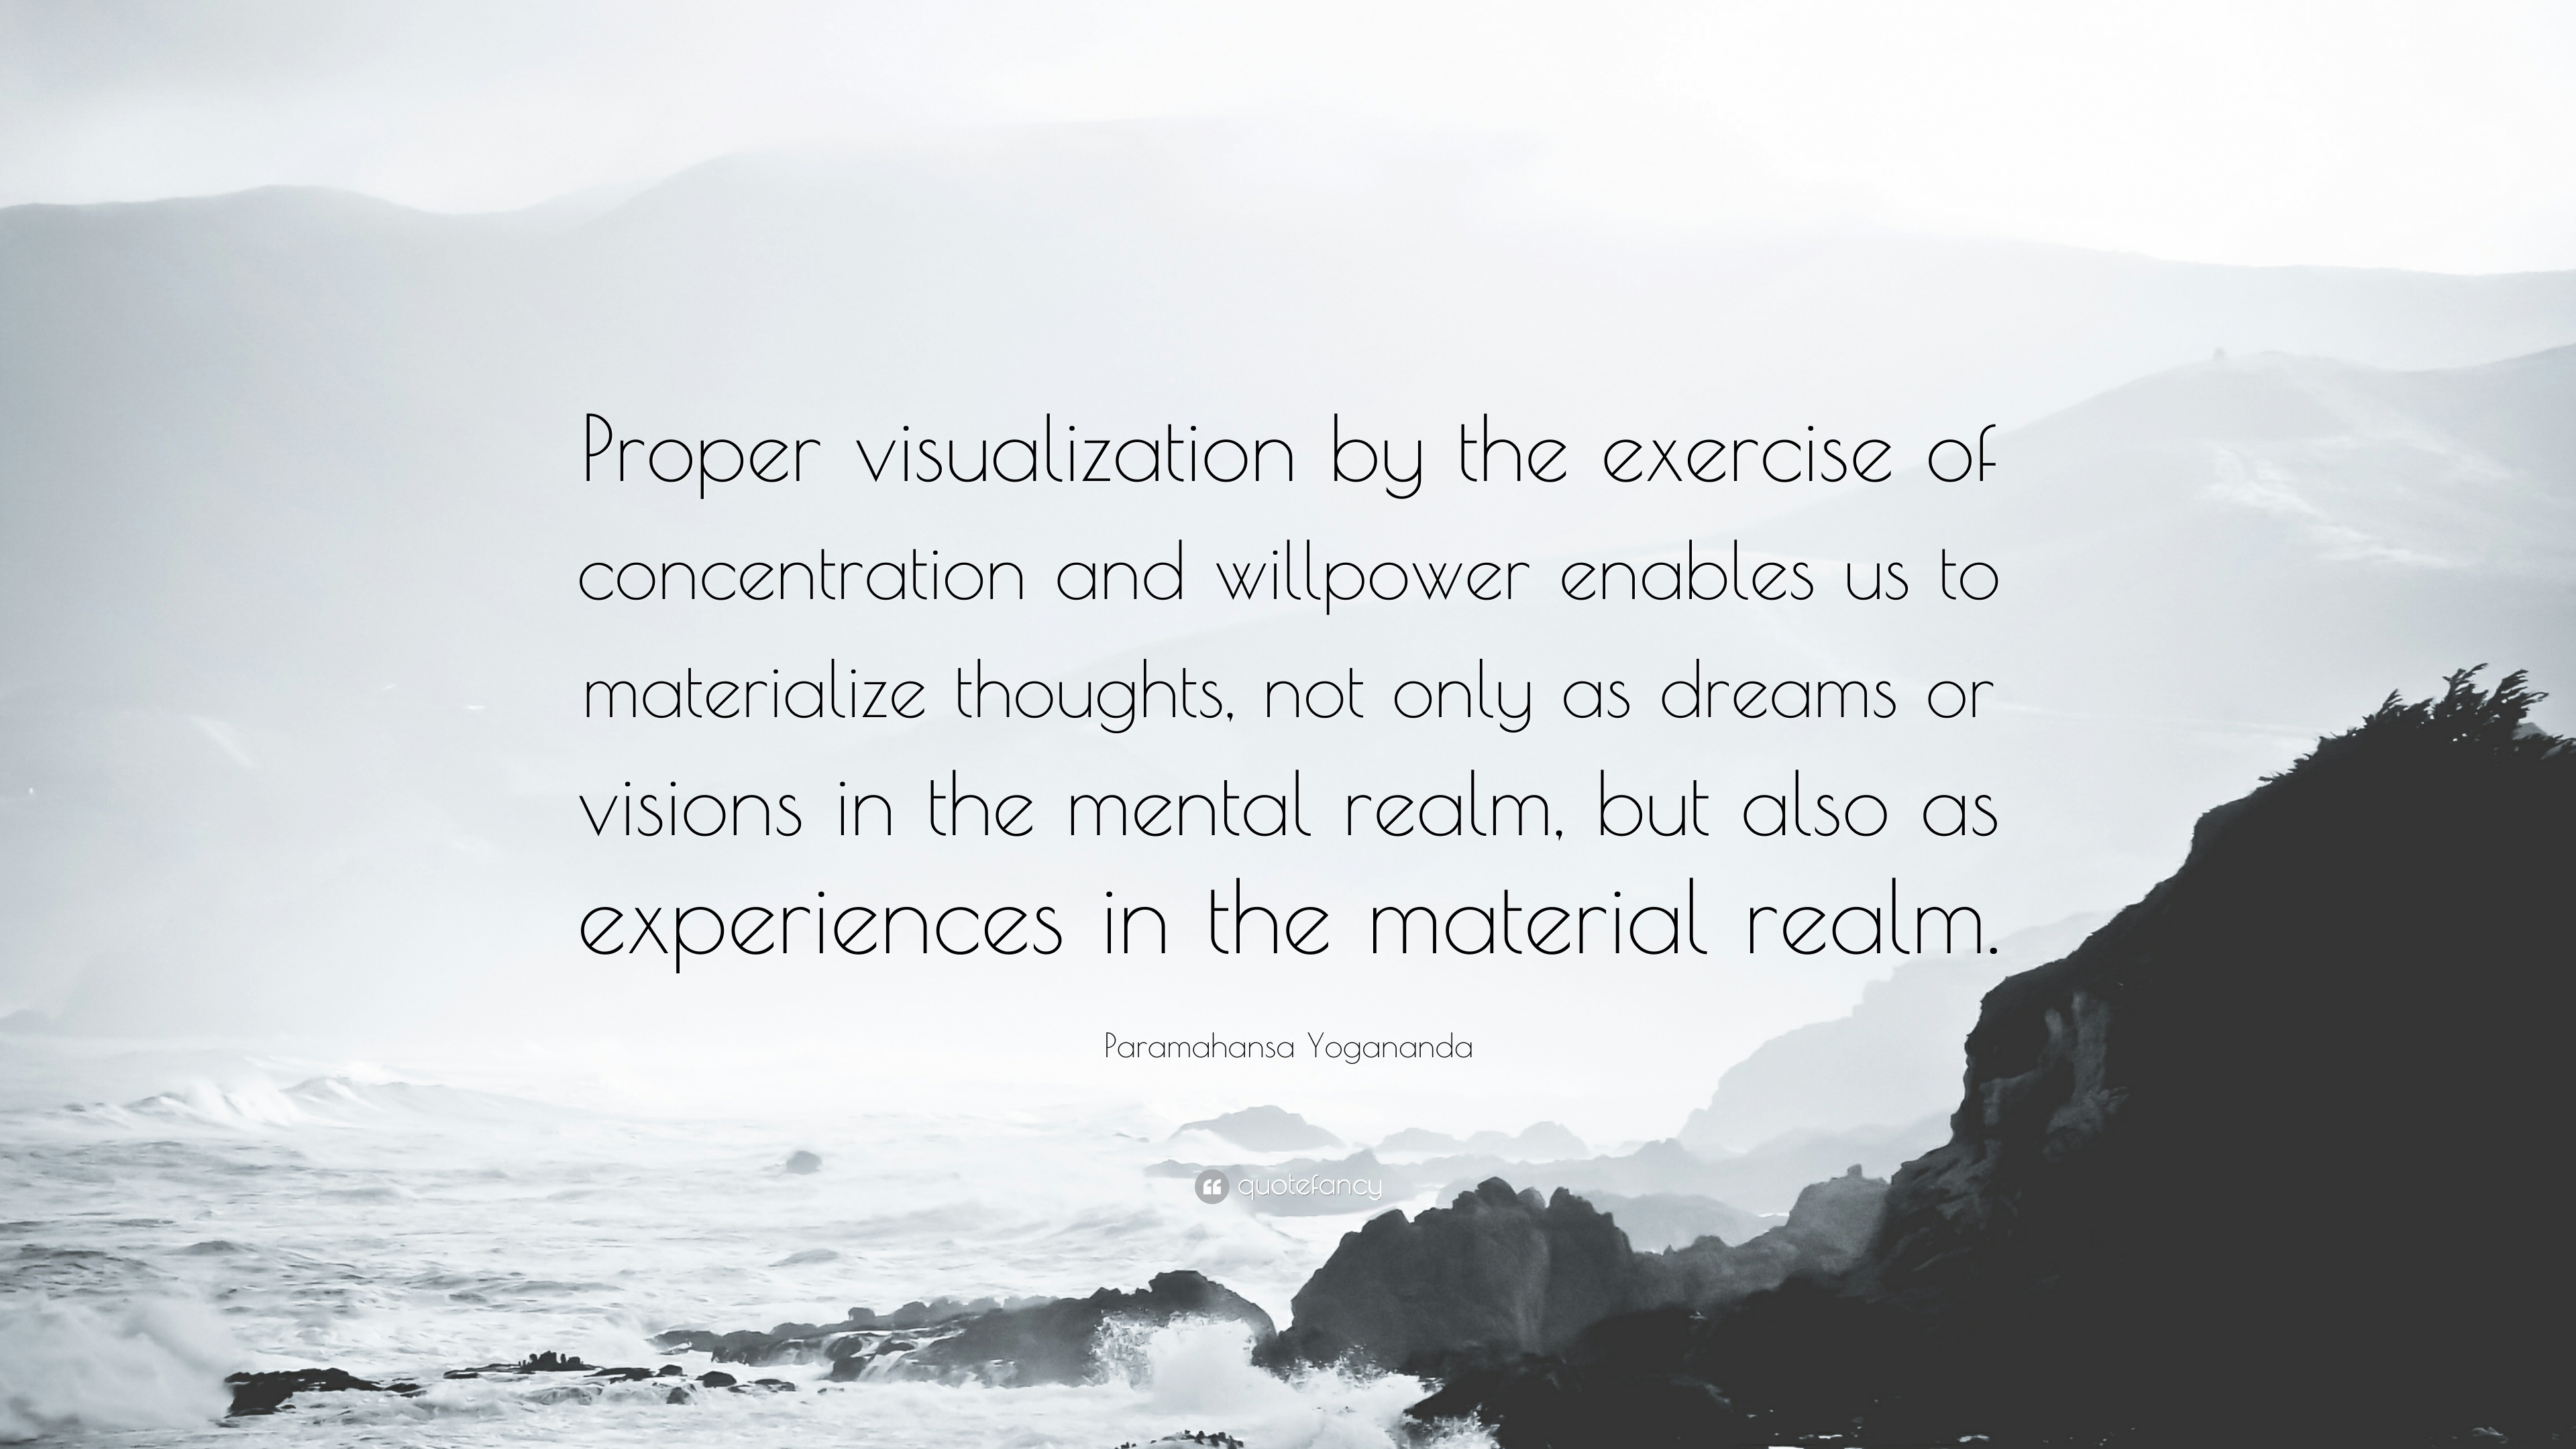 Materialization of thoughts 20